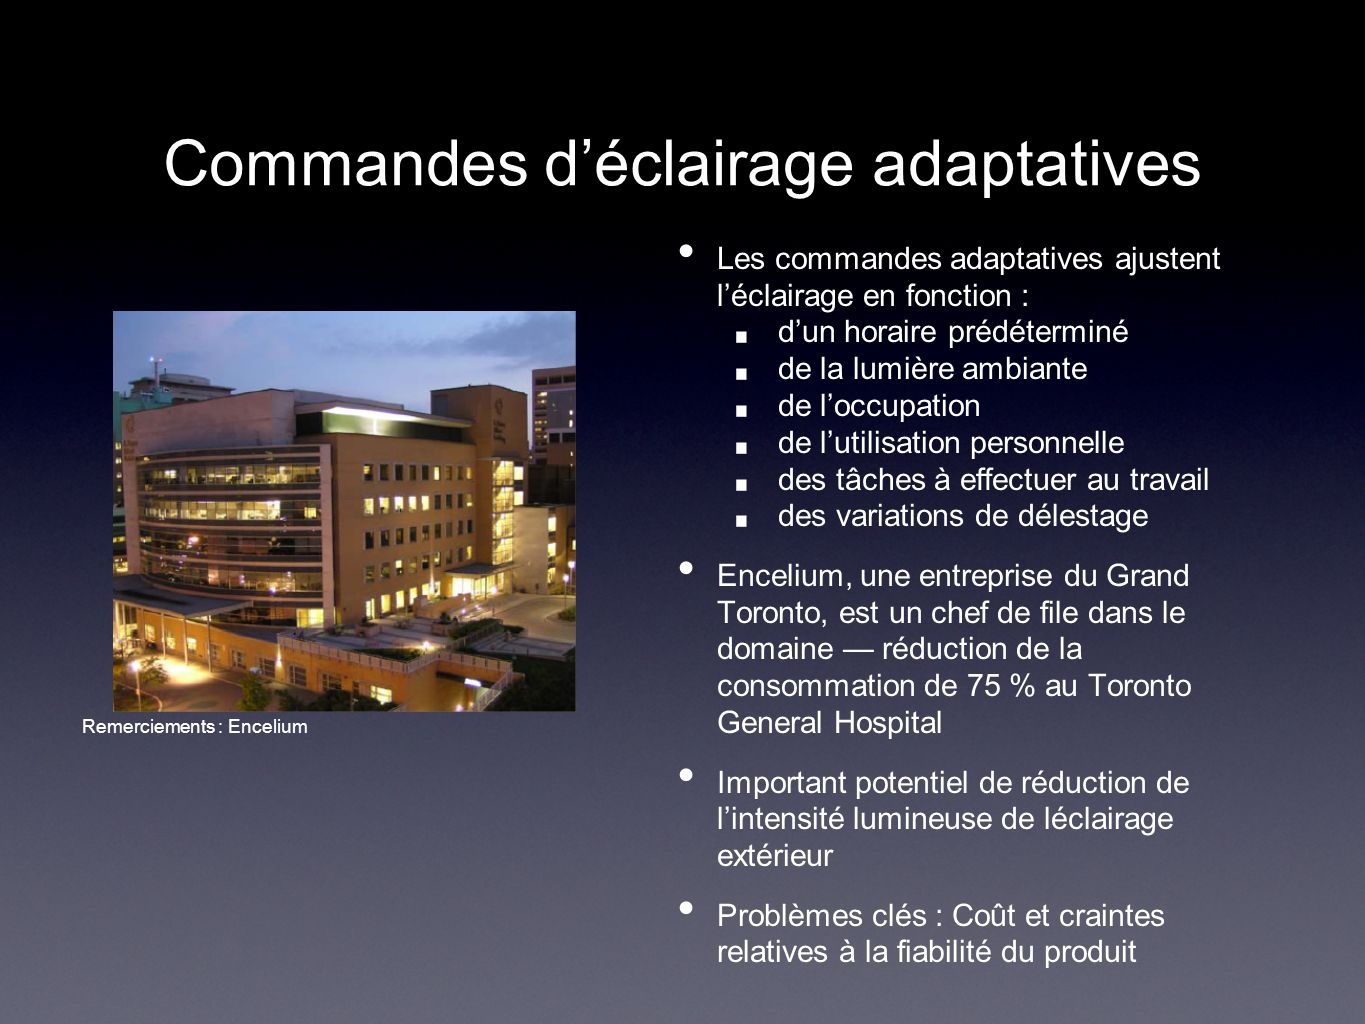 Commandes d'éclairage adaptatives